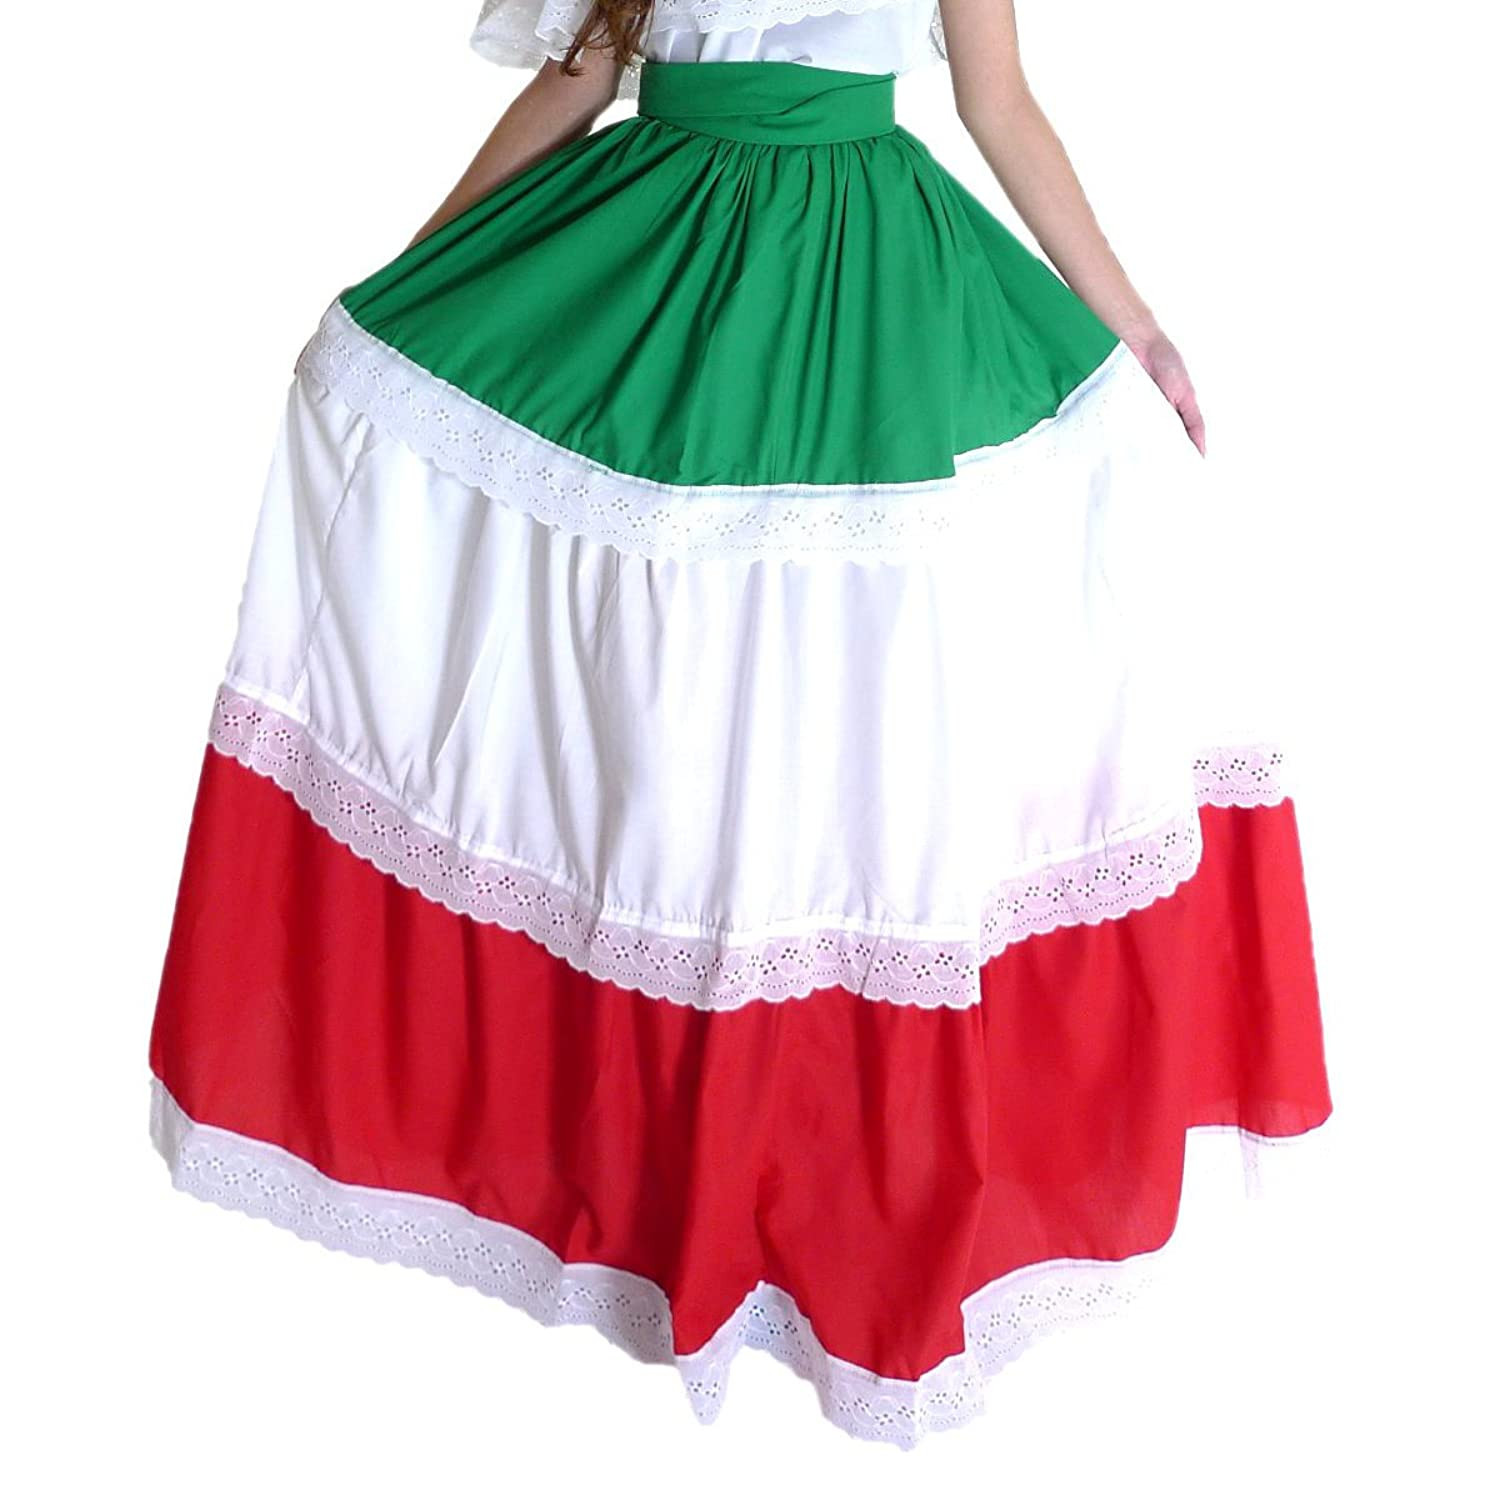 Typical mexican dresses images